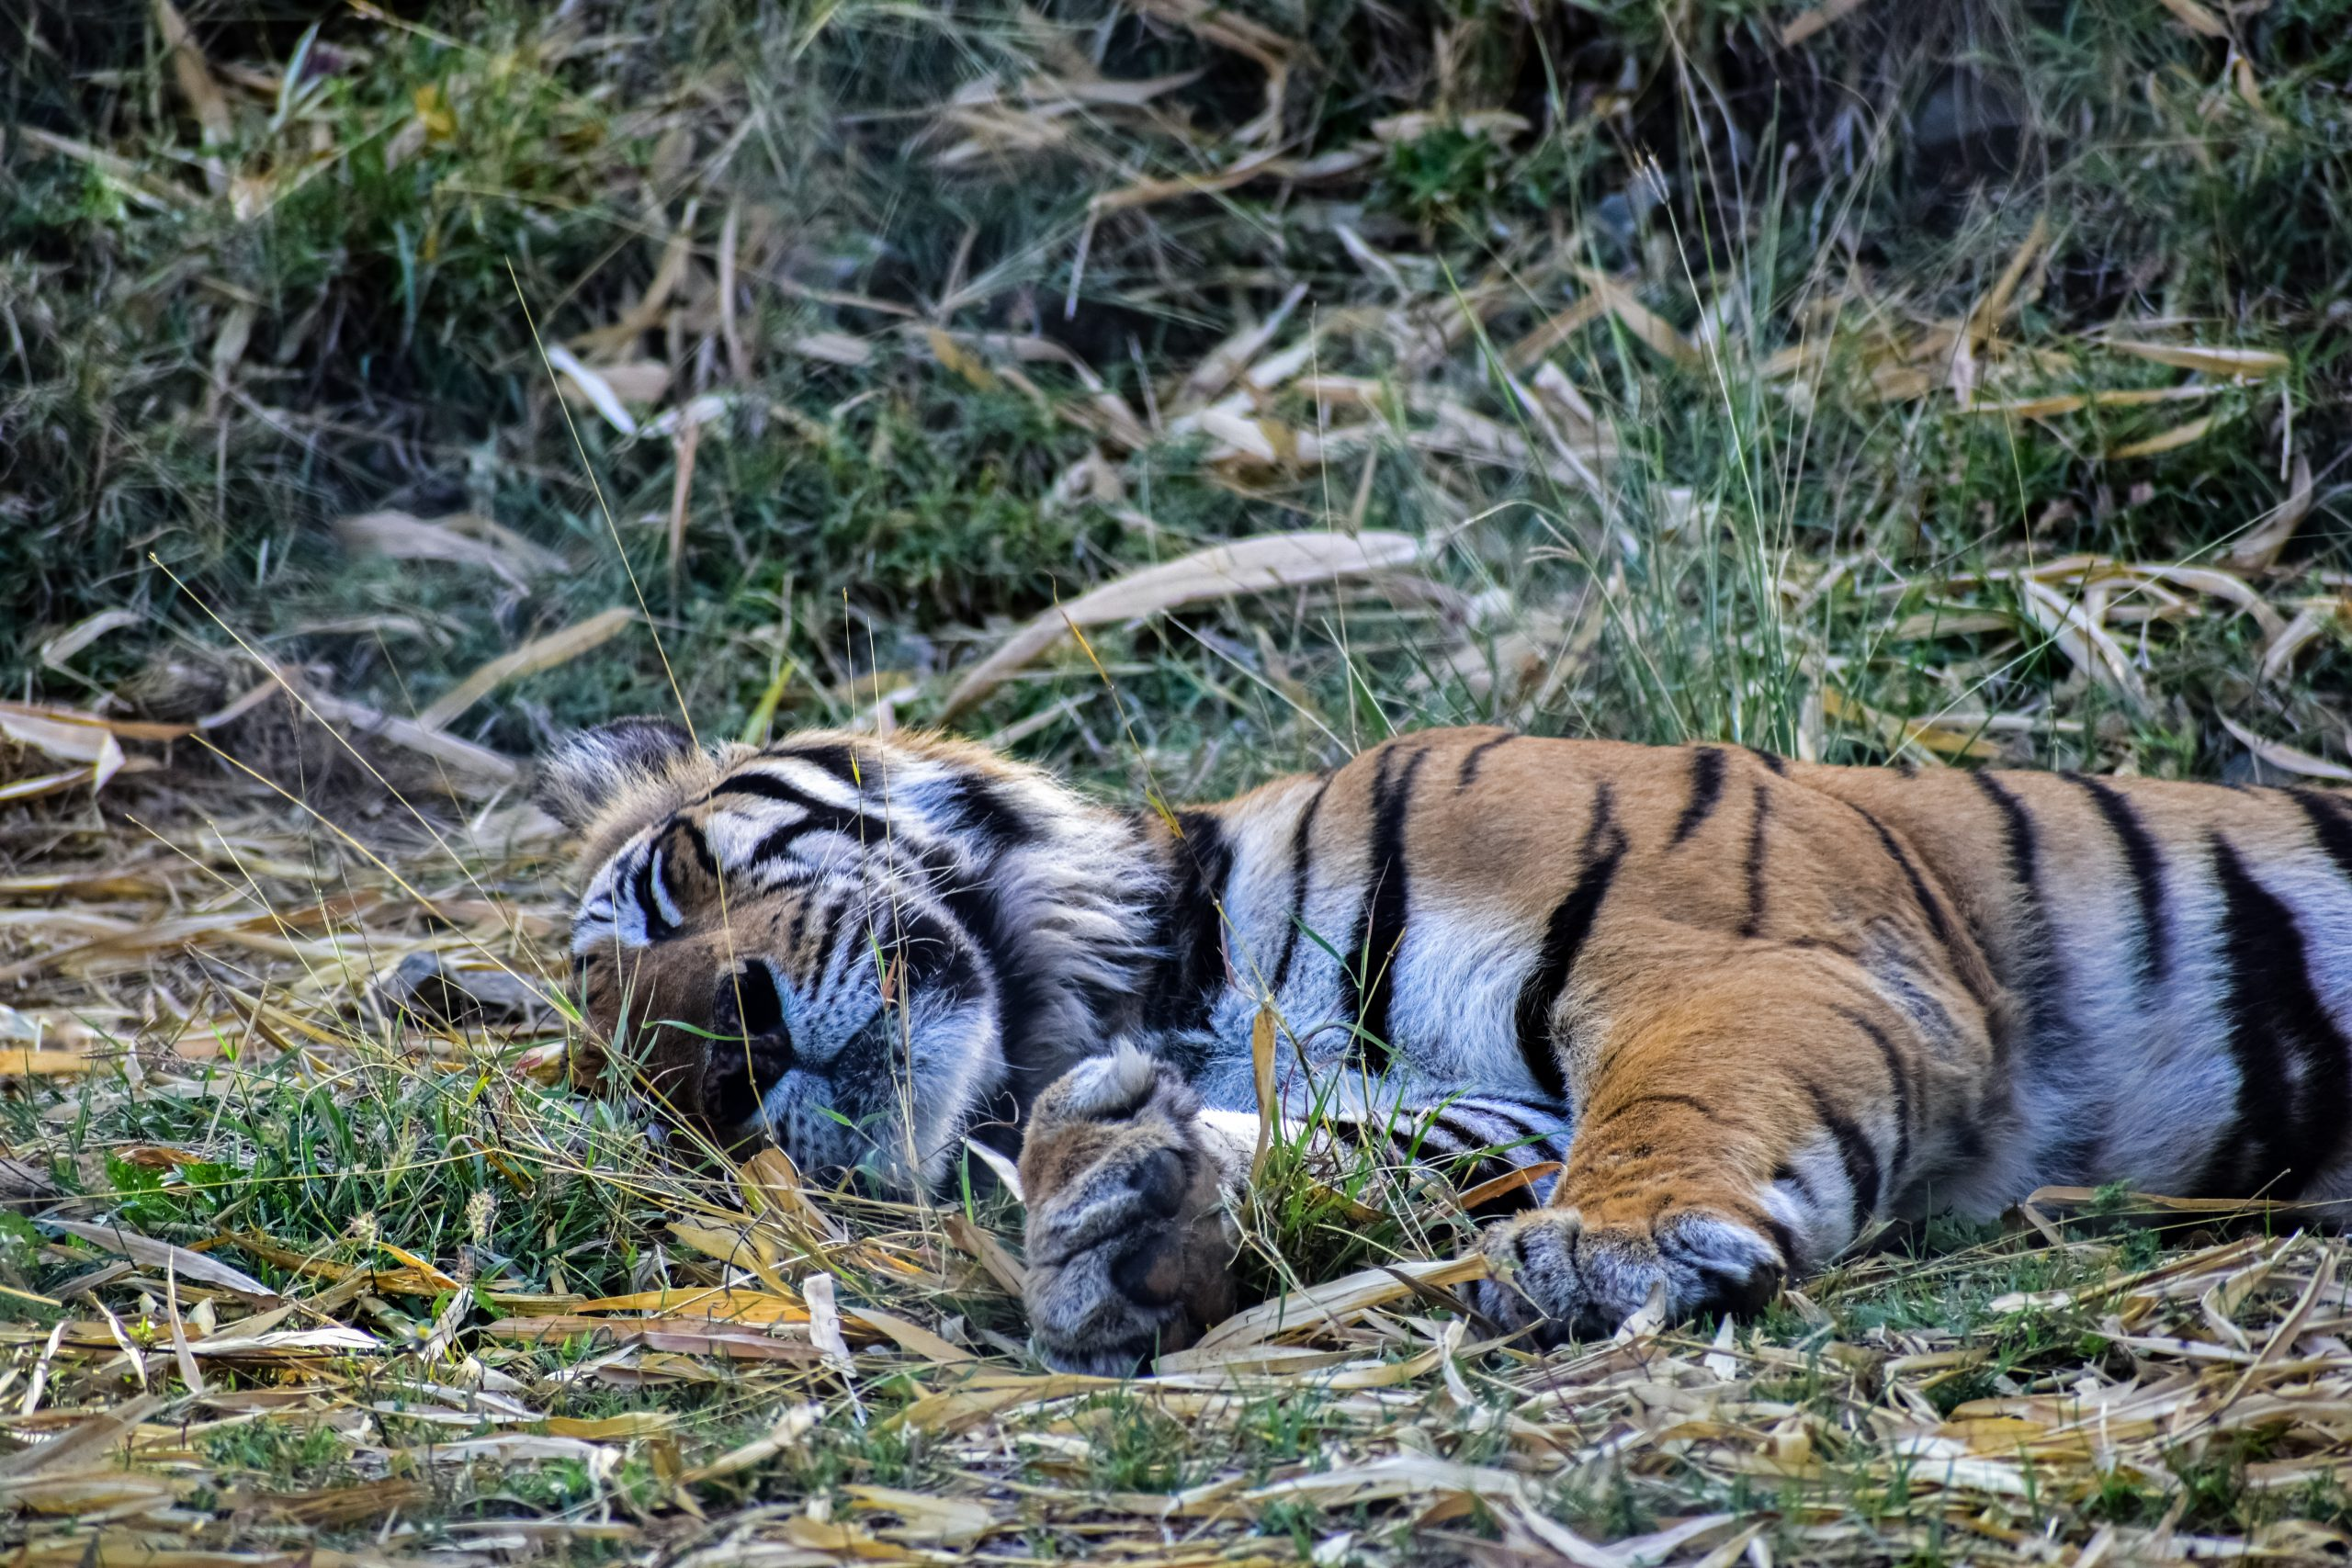 A sleeping Bengal tiger